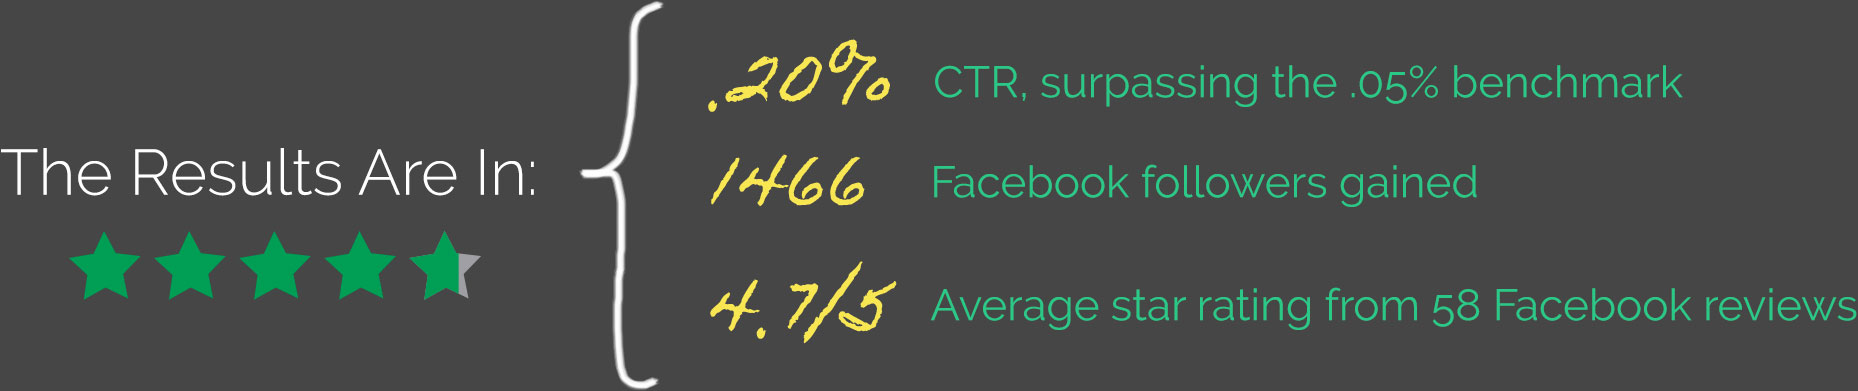 The Results Are In: .20% CTR, surpassing the .05% benchmark. 1466 Facebook followers gained. 4.7/5 Average star rating from 58 Facebook reviews.